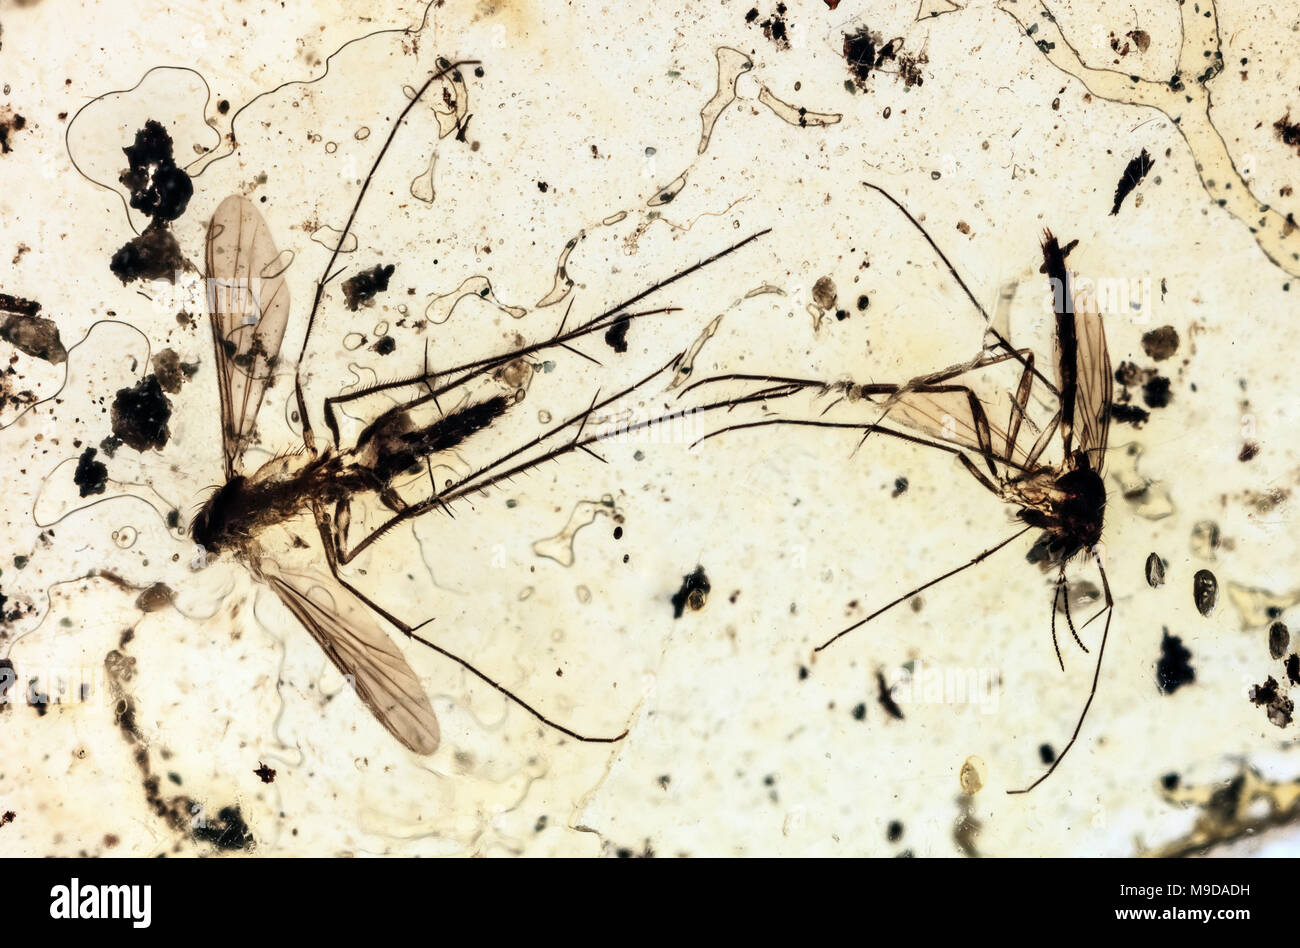 40 Million Year Old Mosquitoes in Amber, Dominican Republic - Stock Image